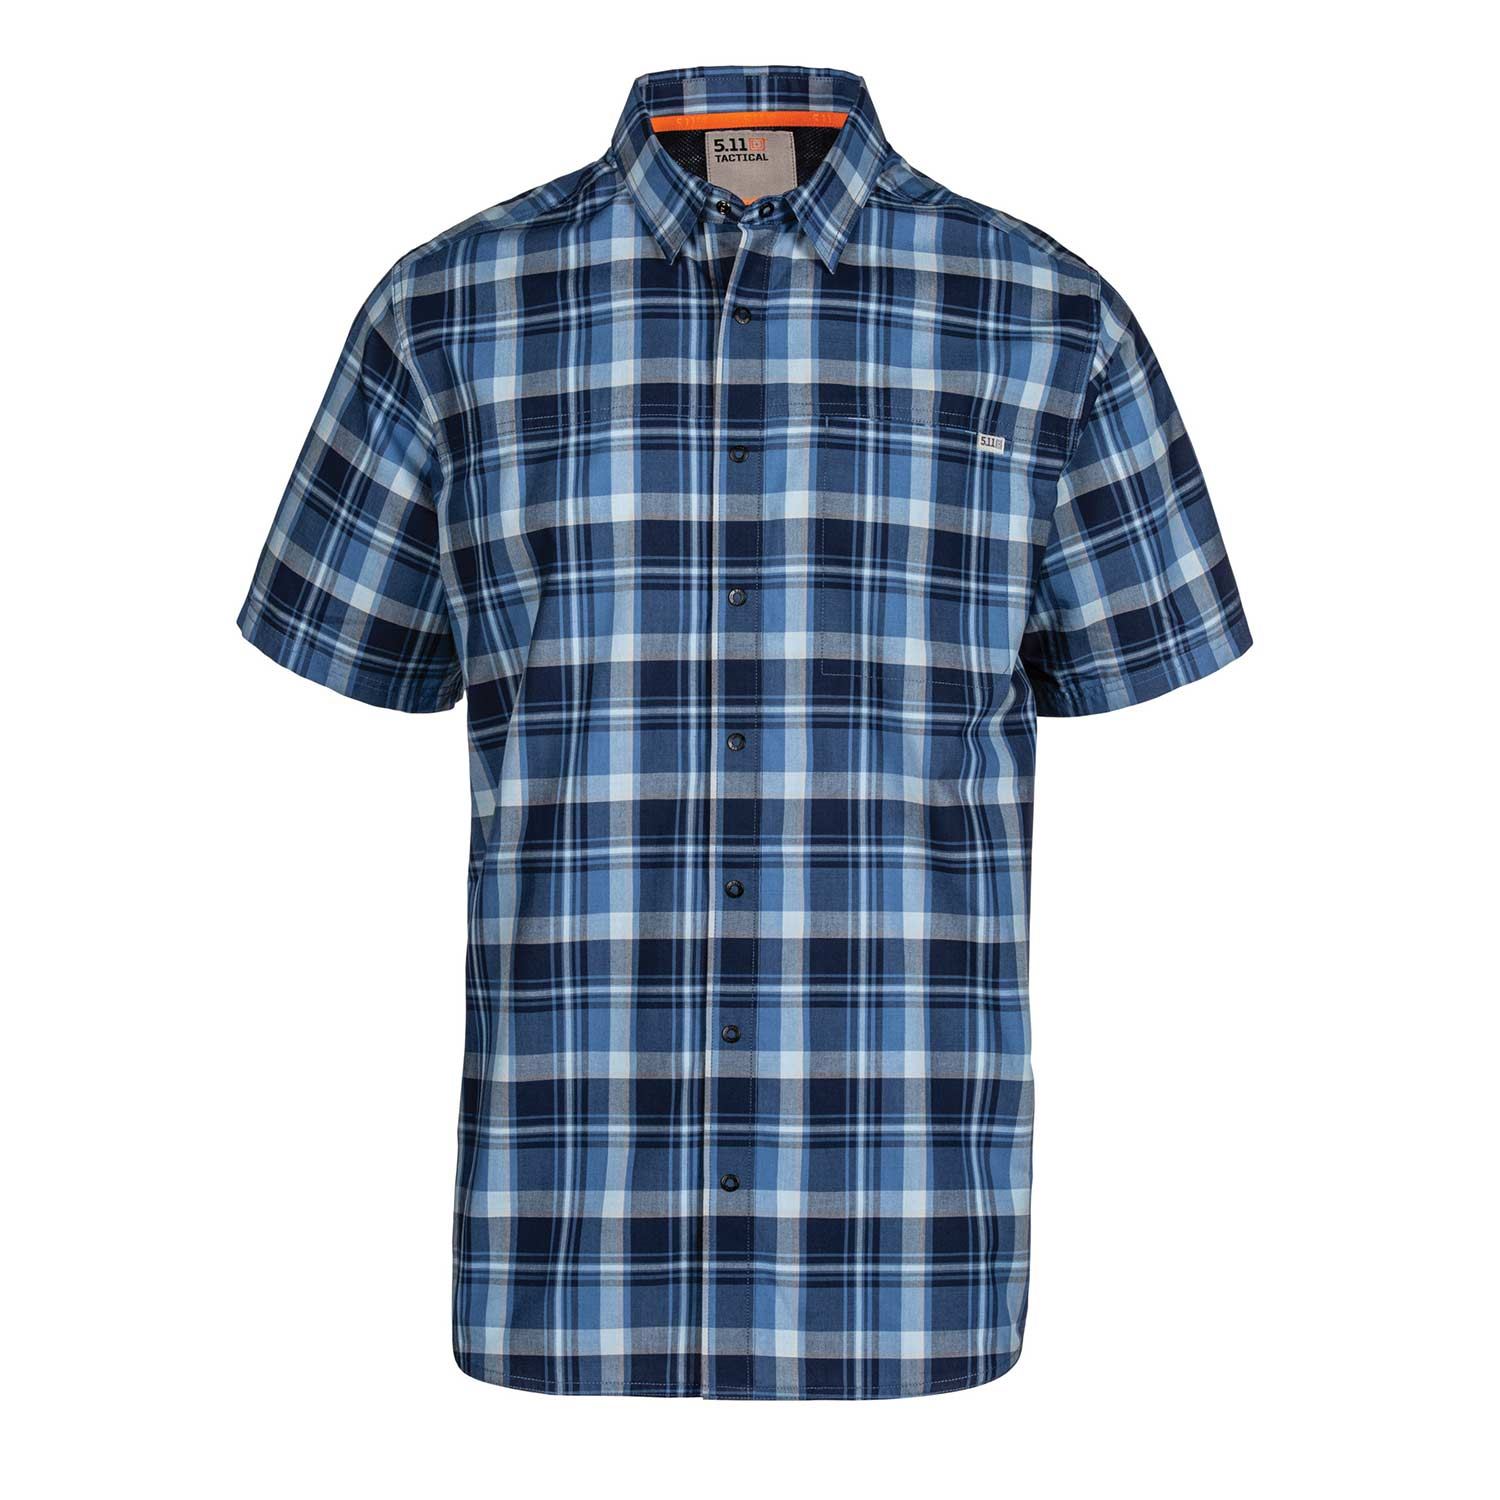 5.11 Tactical Hunter Plaid Short Sleeve Shirt